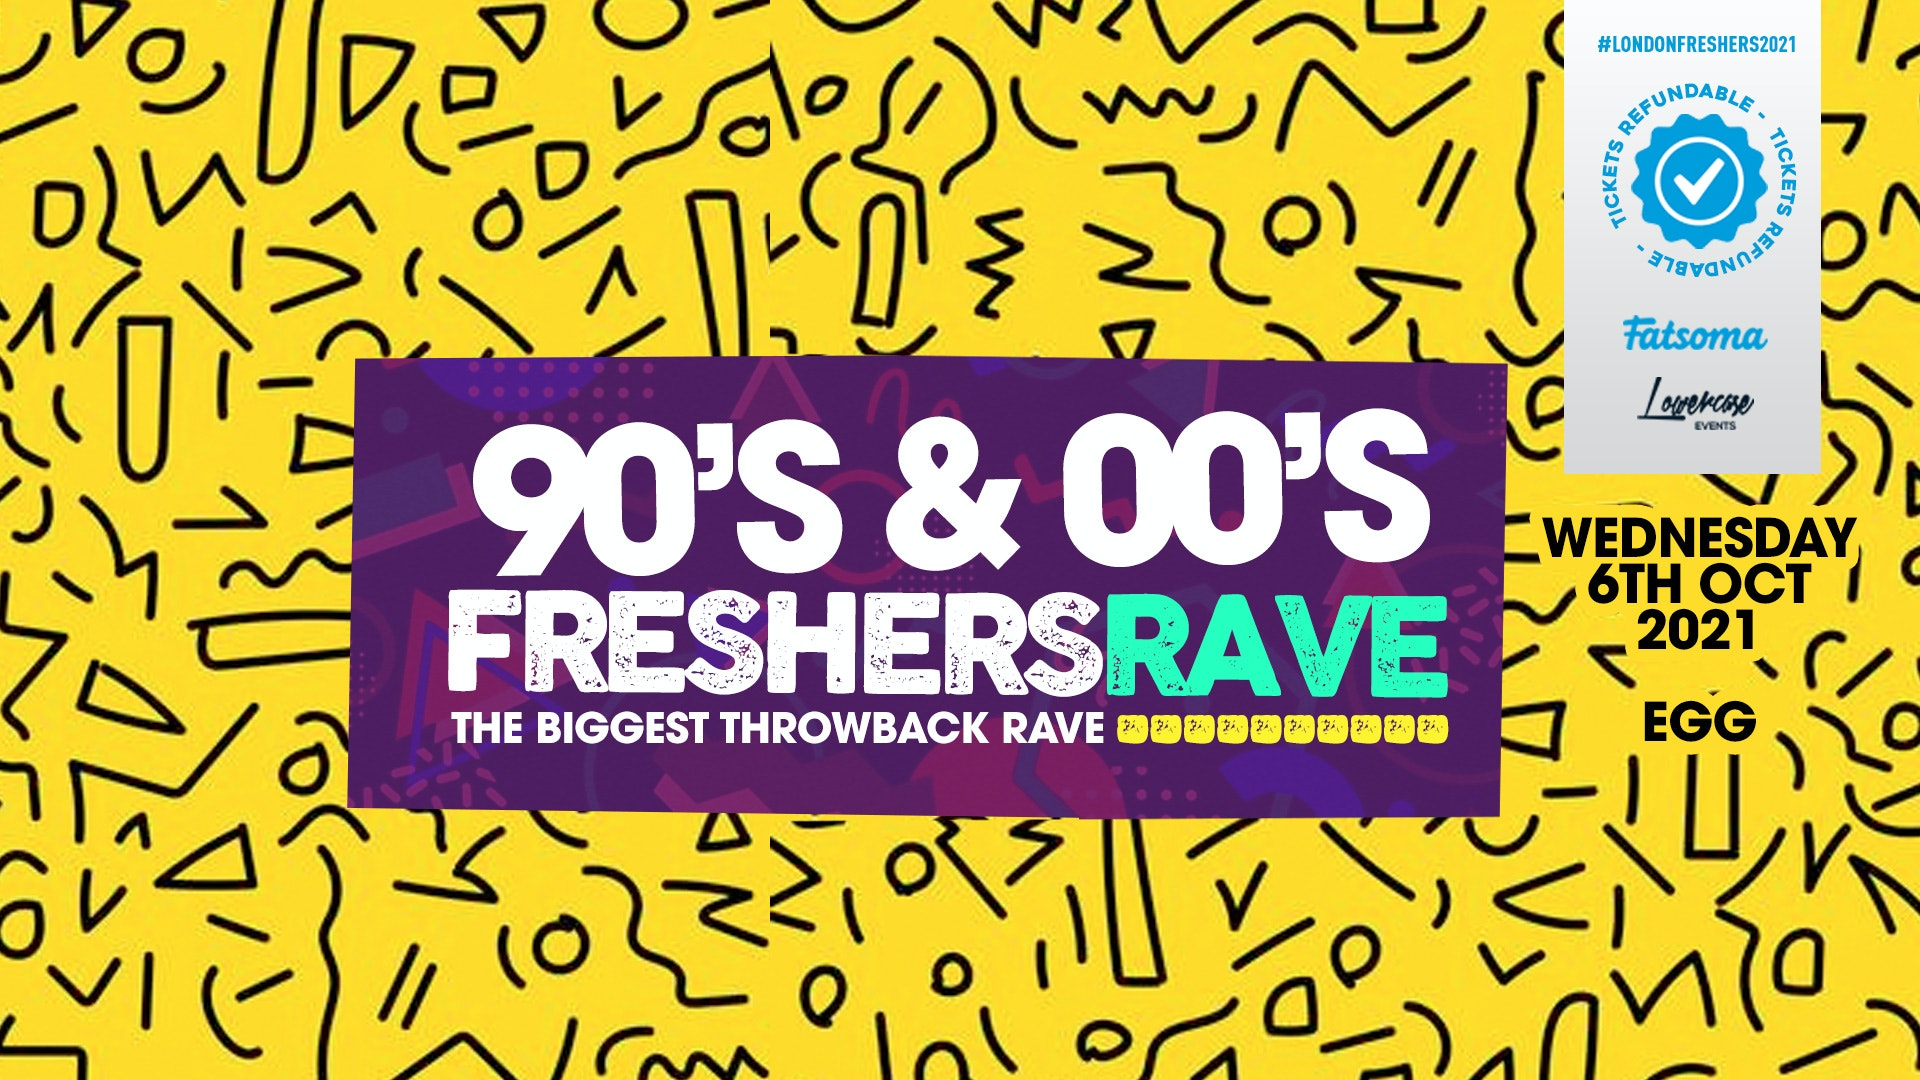 THE 90S & 00S FRESHERS RAVE – THE BIGGEST THROWBACK RAVE! // FRESHERS WEEK 3 DAY 3